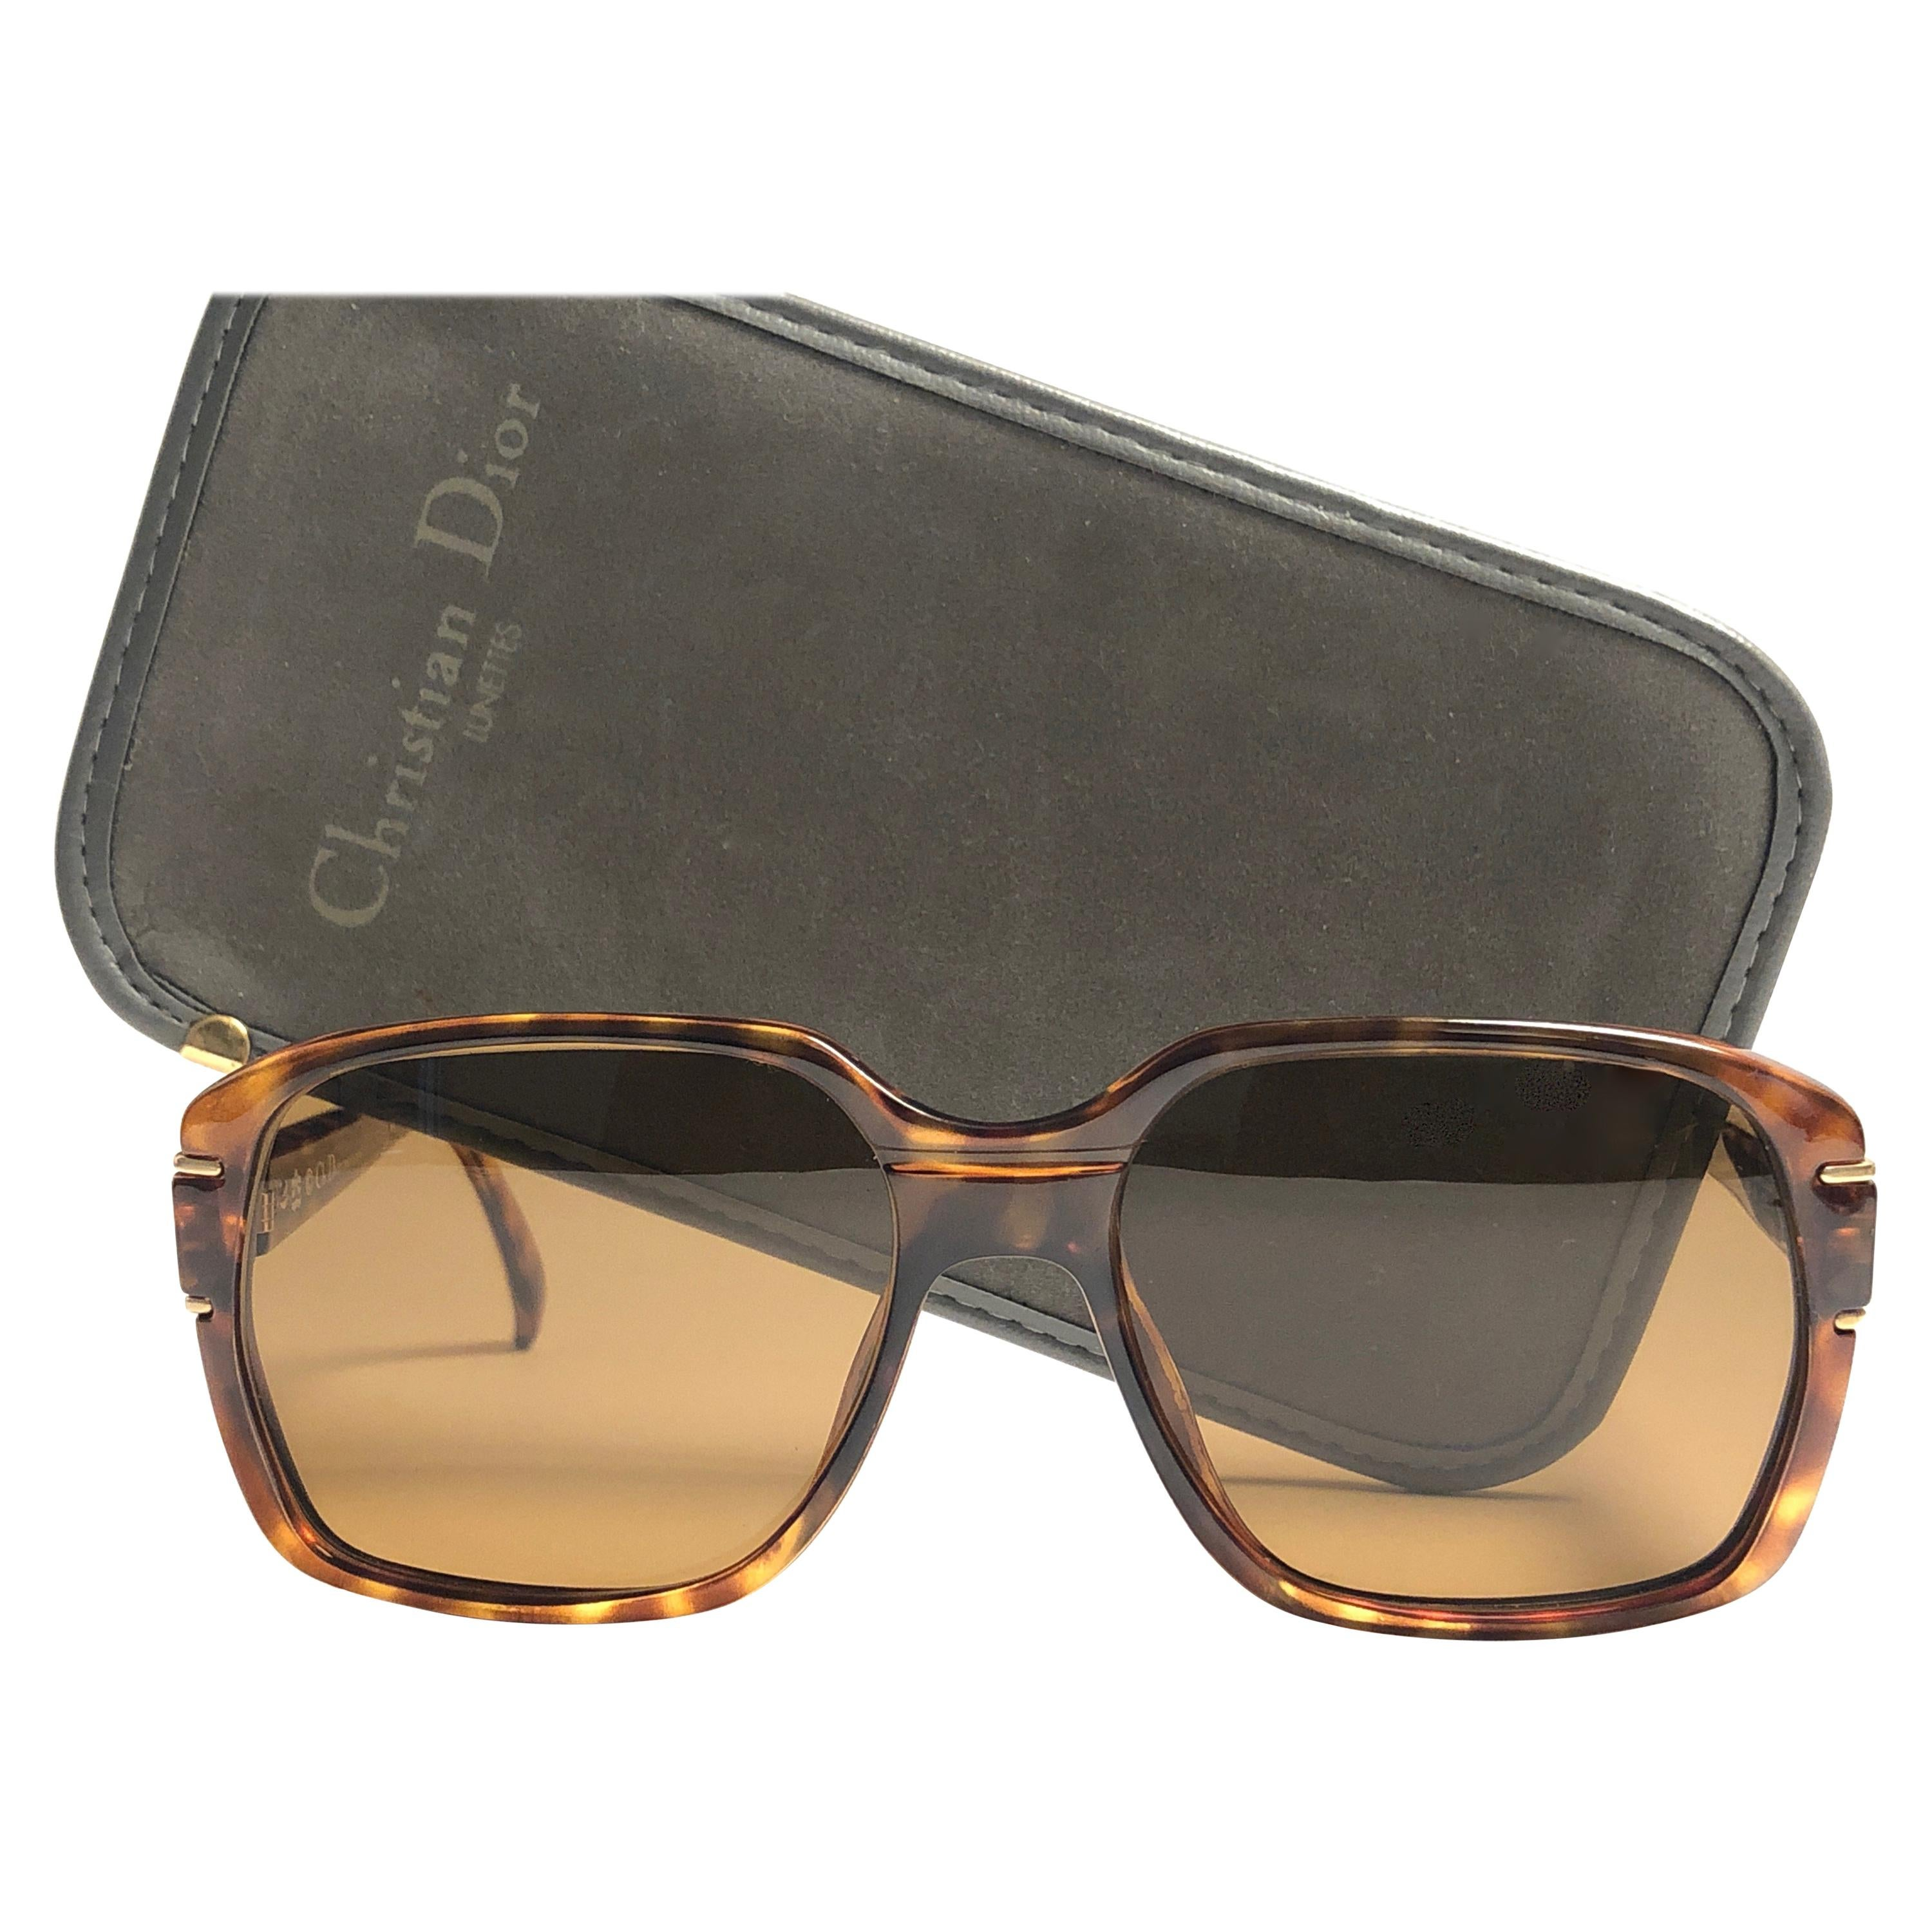 5855ccd0e2cfd Vintage Christian Dior Sunglasses - 233 For Sale at 1stdibs